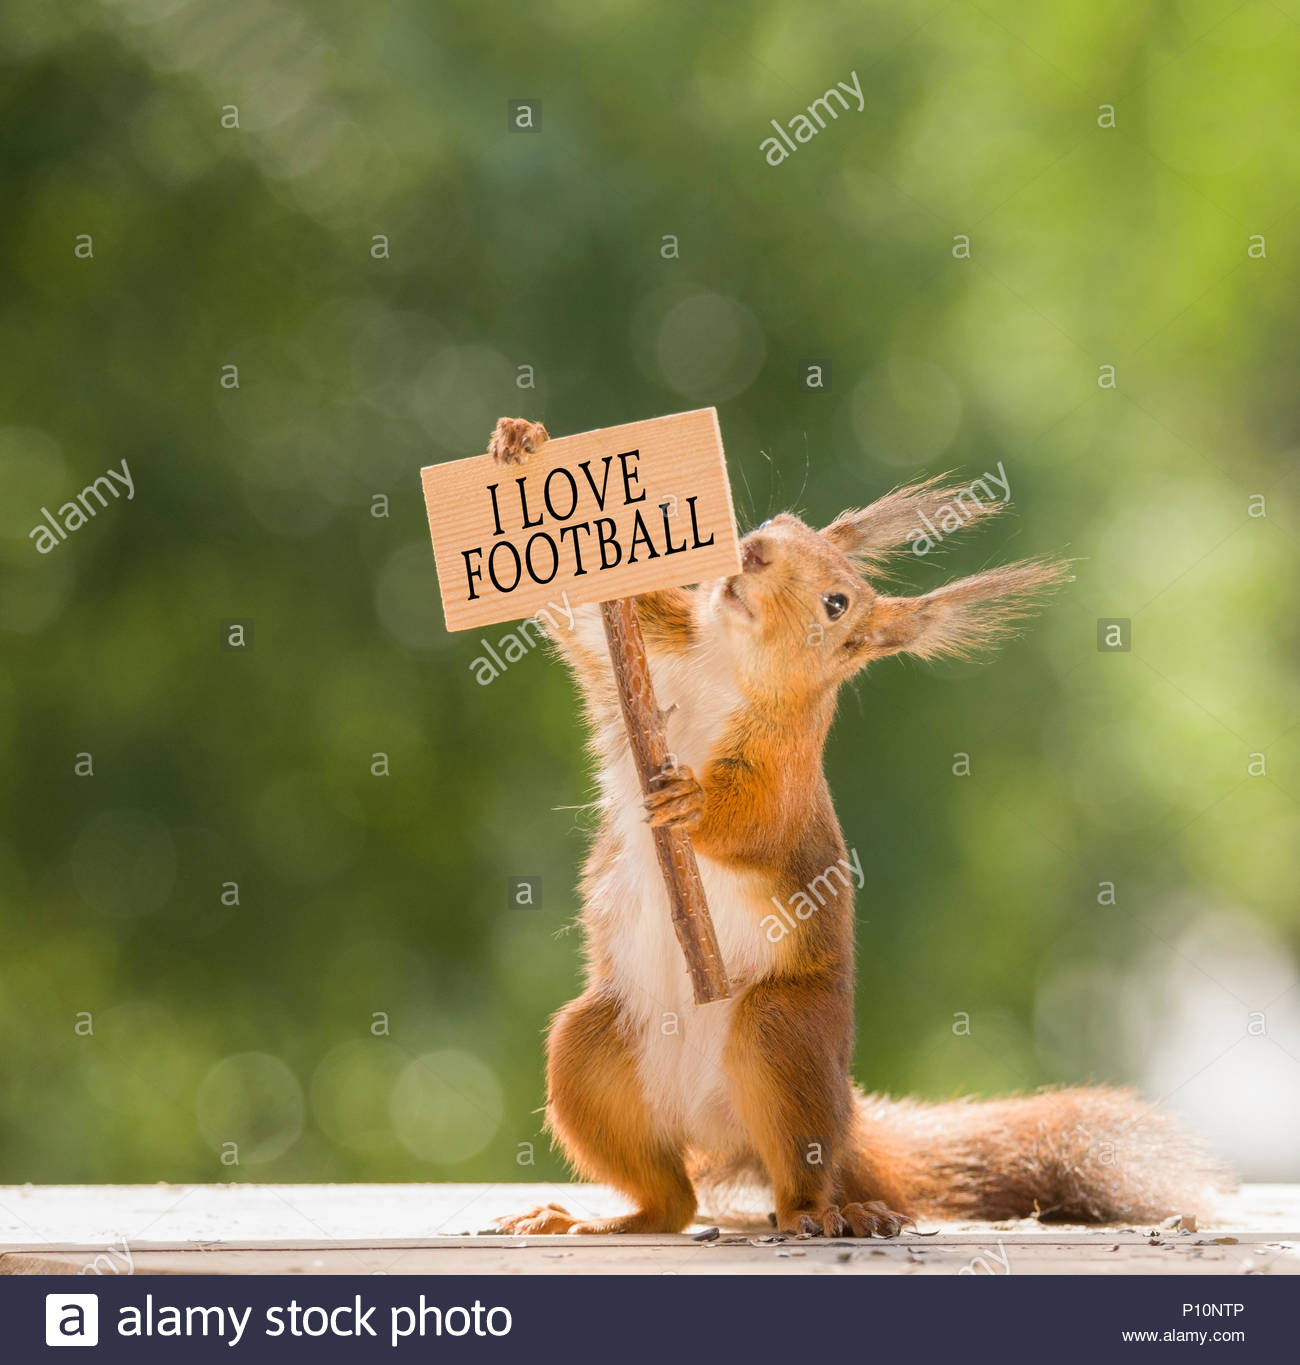 red squirrel holding a football sign - Stock Image